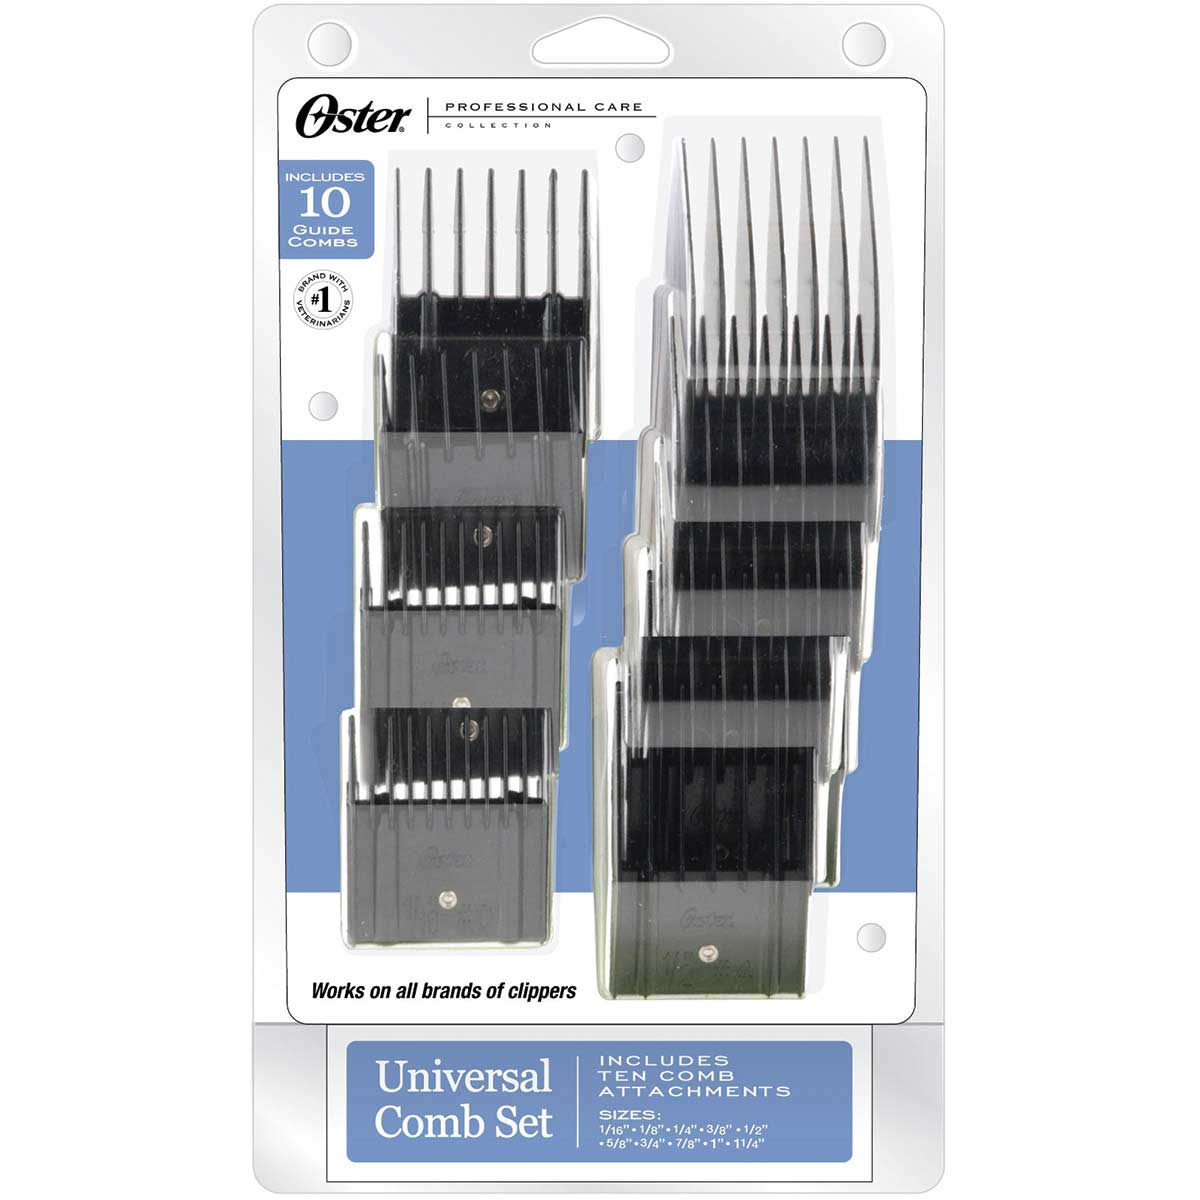 Oster Universal Comb Attachments - Set Of 10 Combs with Storage Pouch